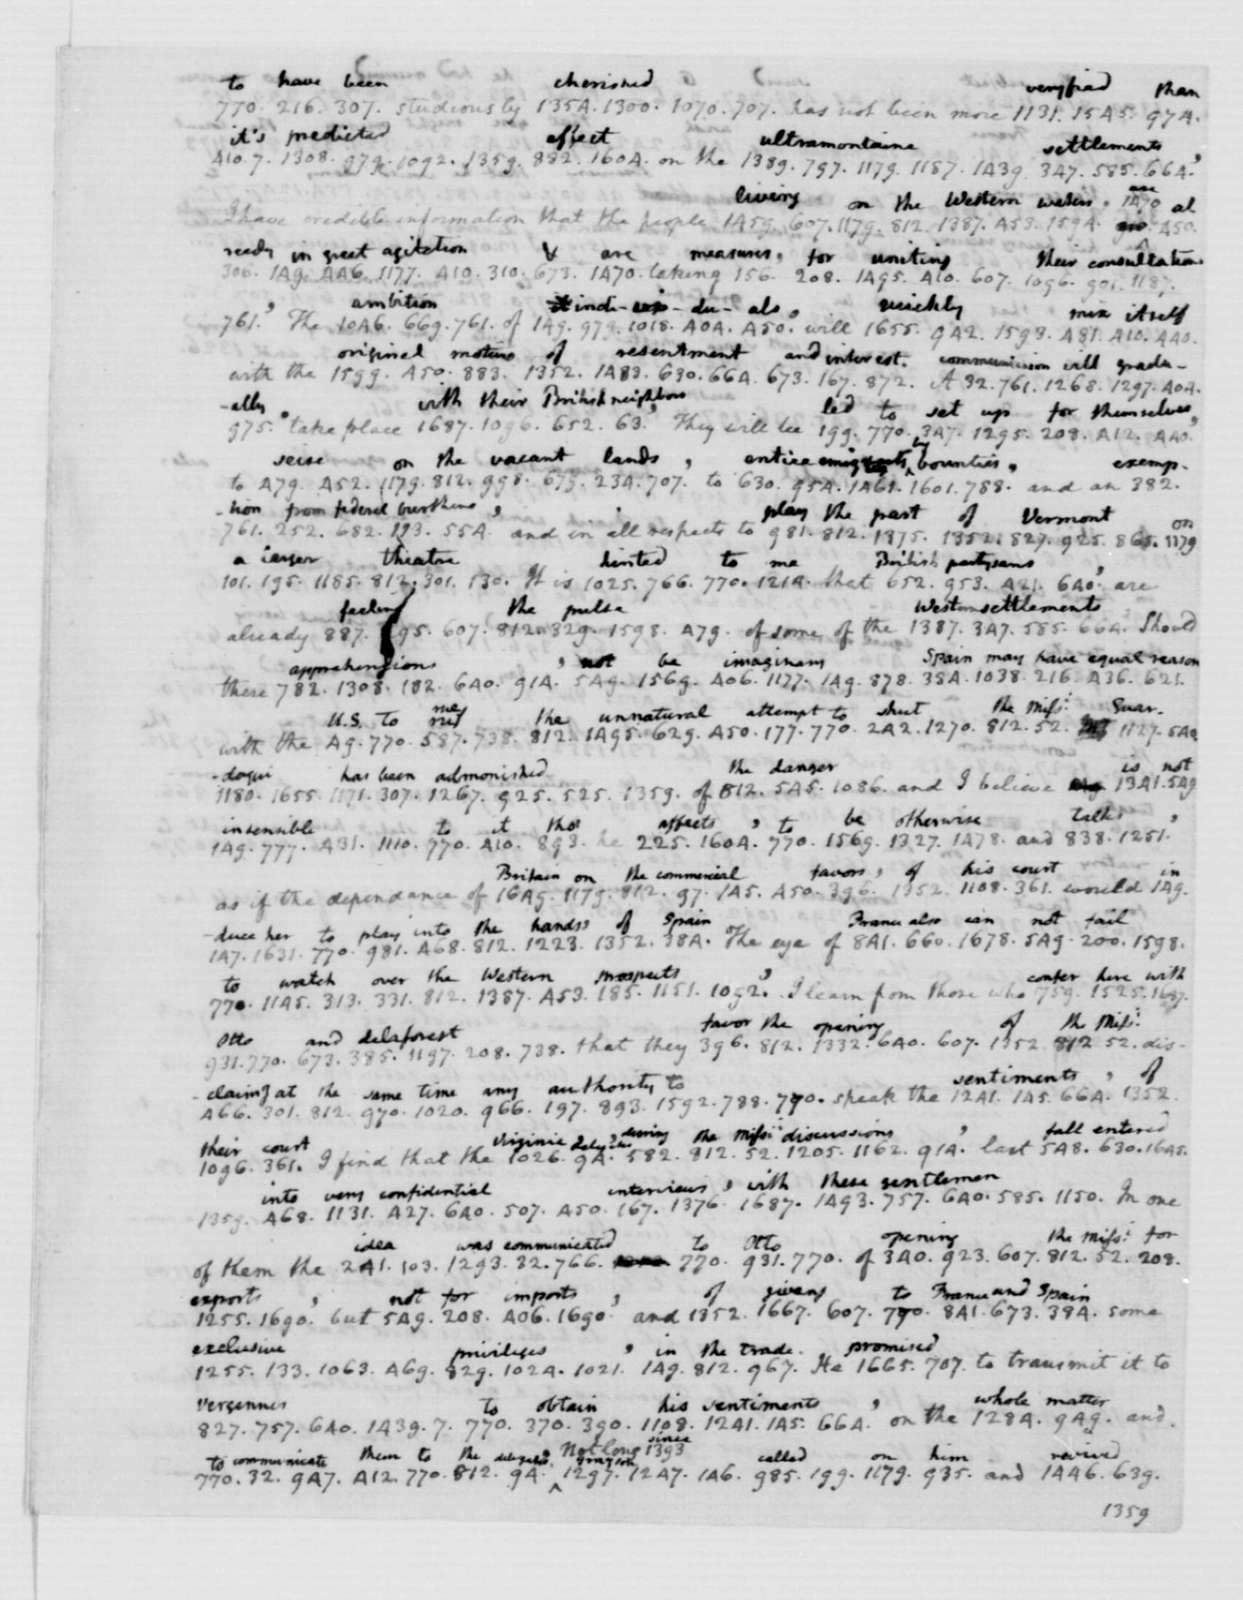 James Madison to Thomas Jefferson, March 19, 1787. Partly in Cipher.